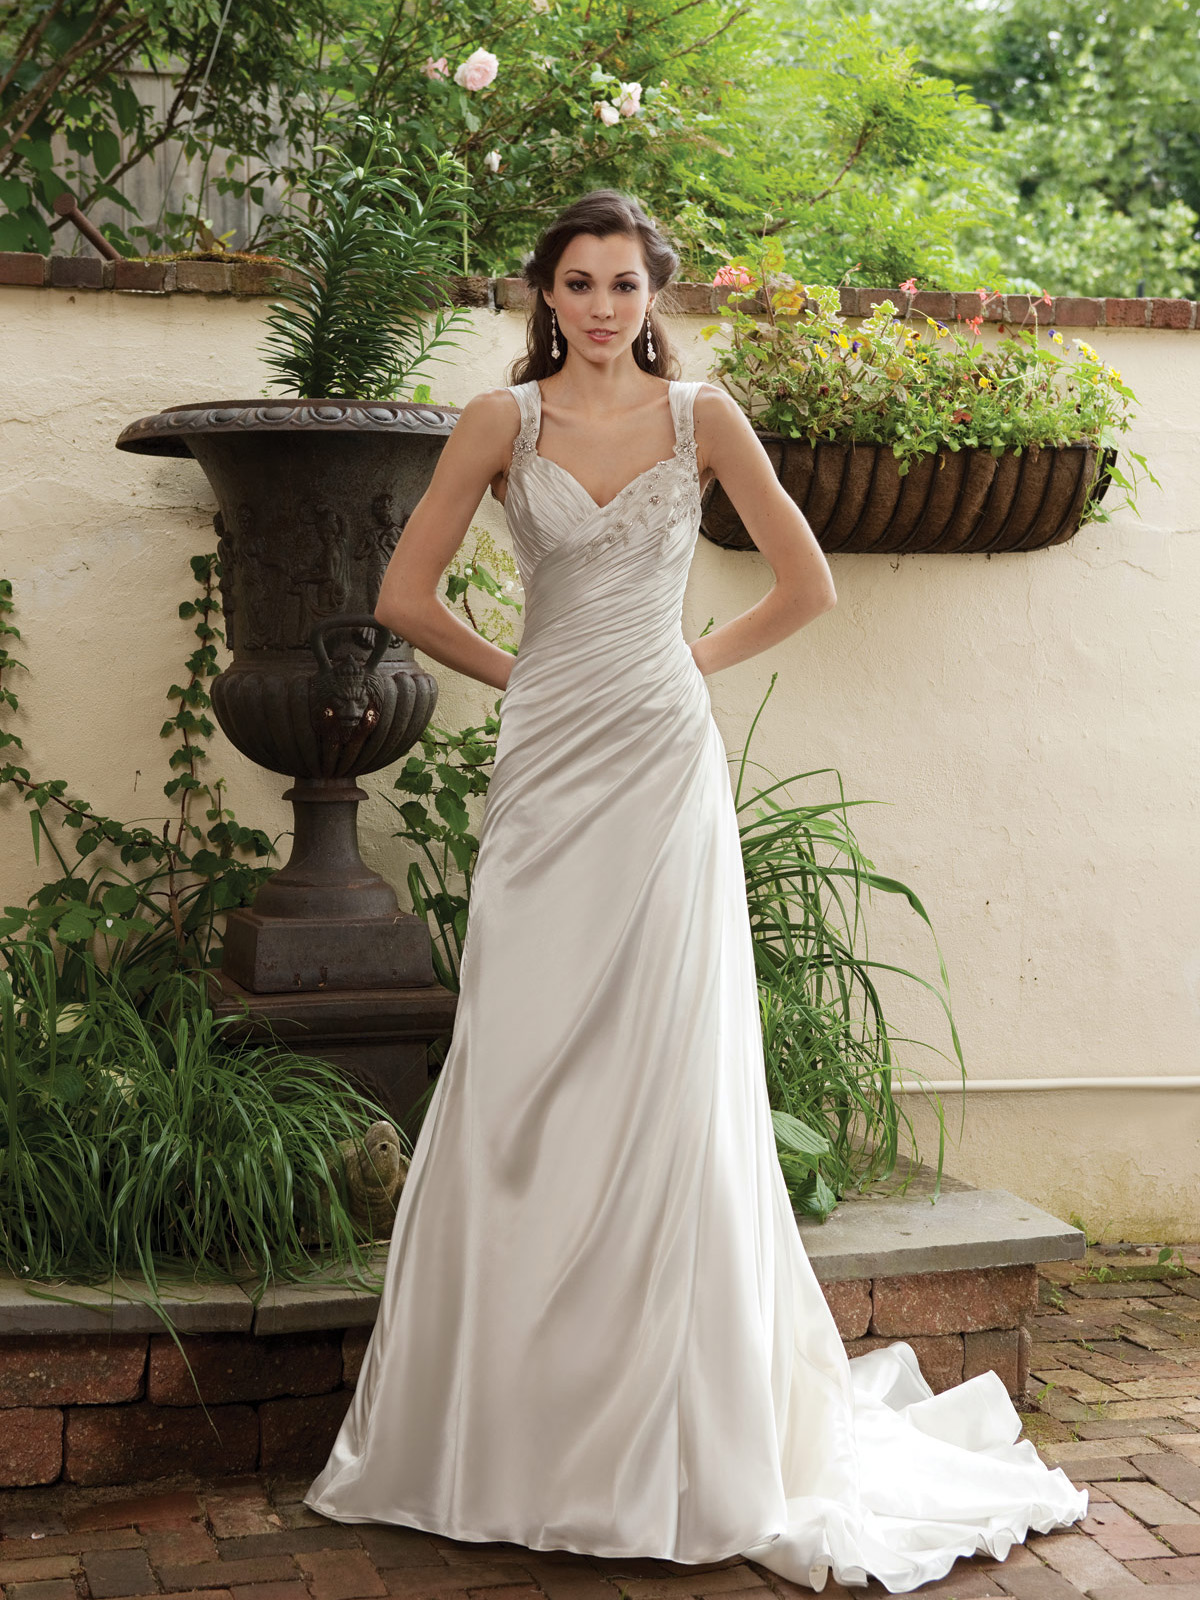 Glamorous and gorgeous outdoor wedding dresses ohh my my for Dress for a spring wedding